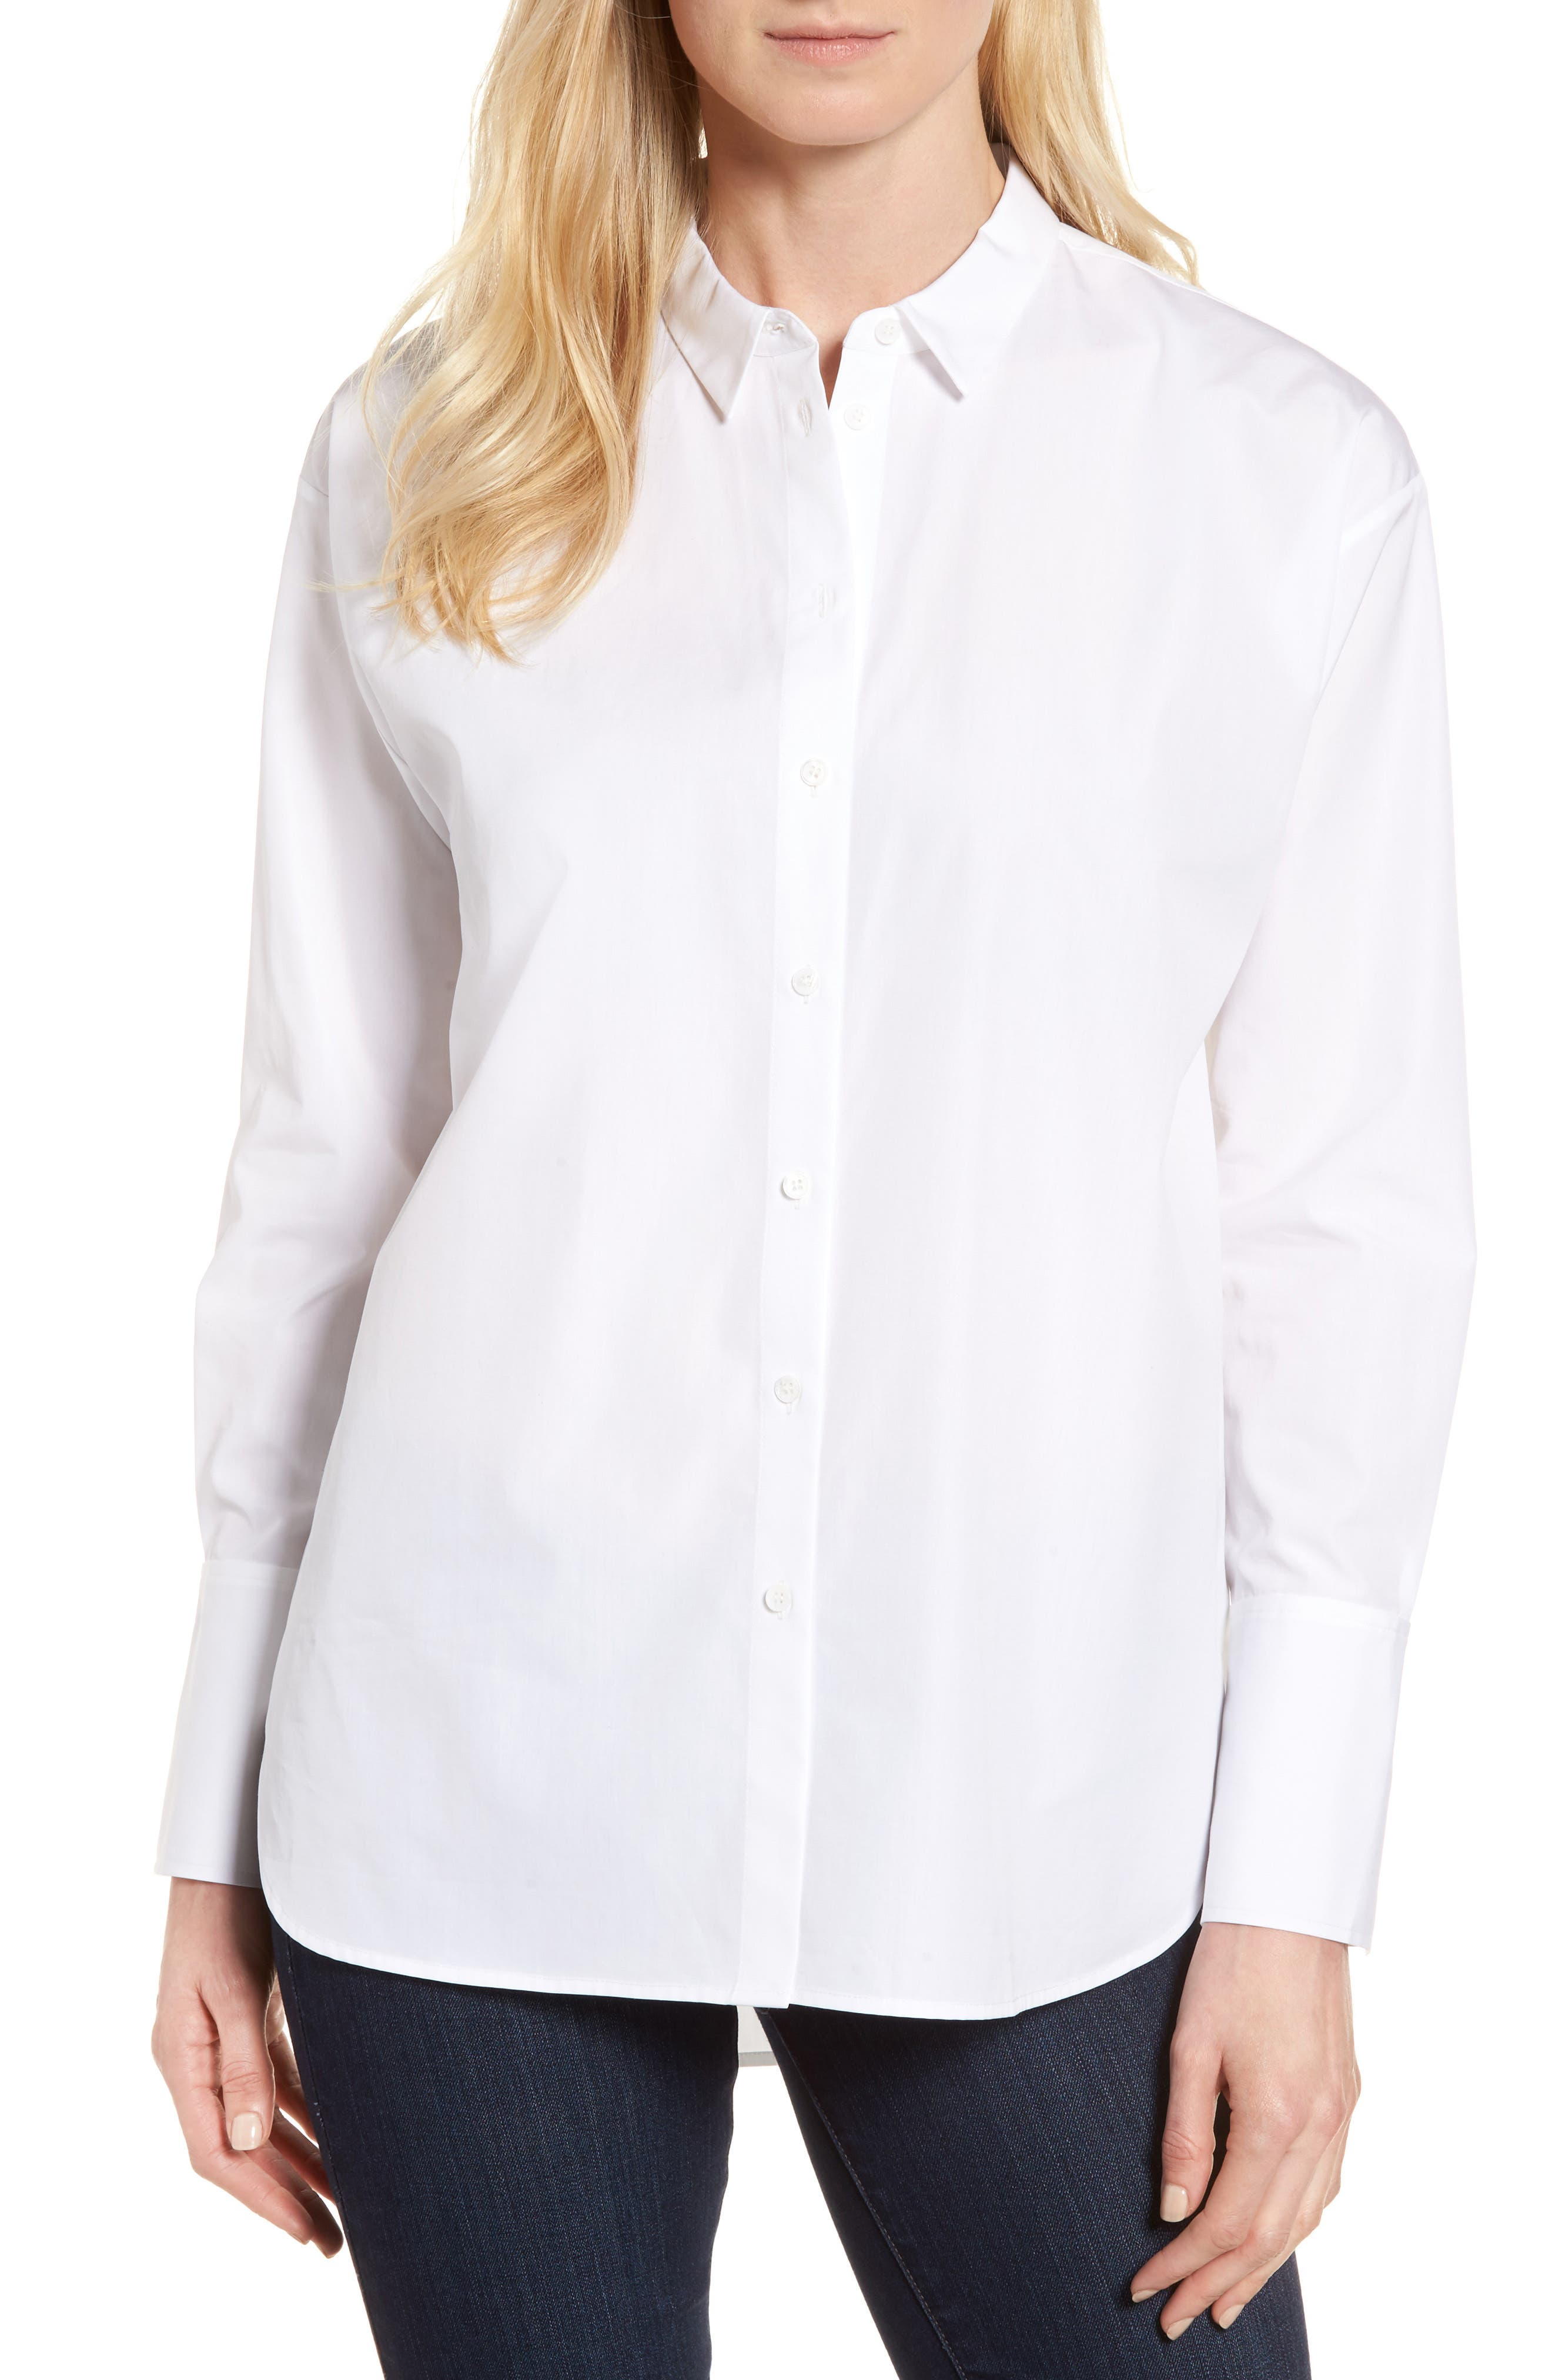 Poplin Shirt,                             Main thumbnail 1, color,                             White